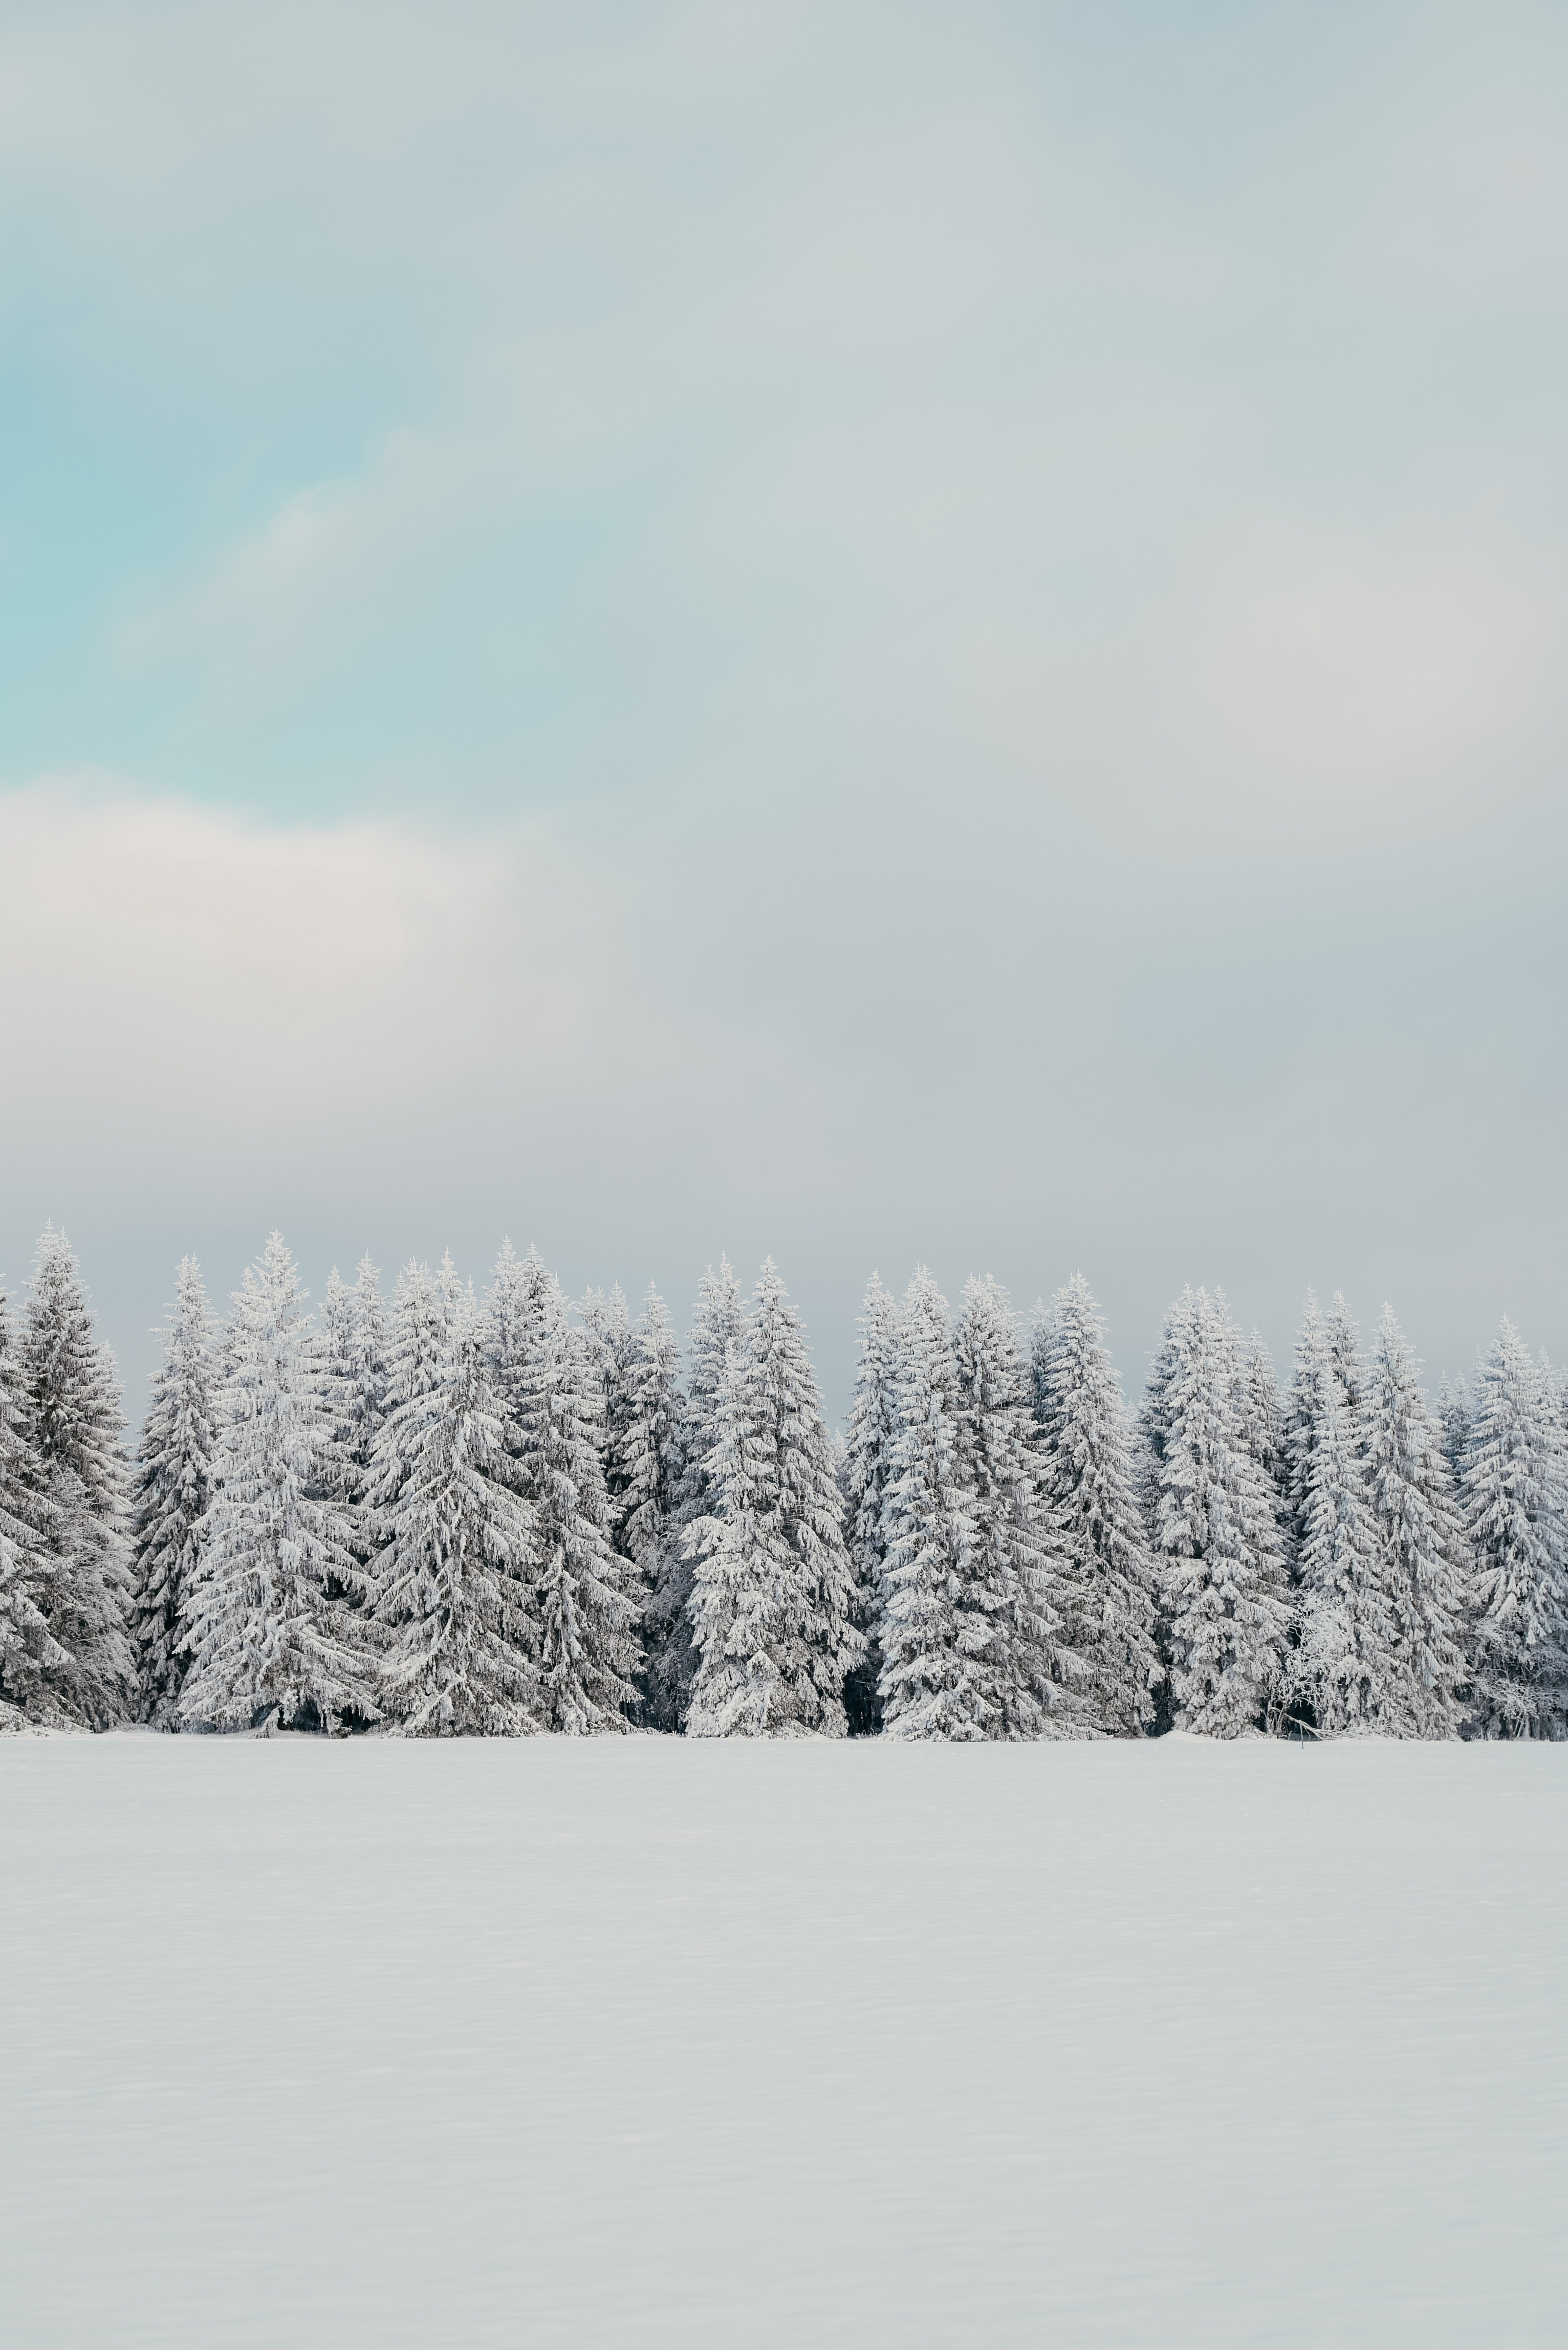 146589 download wallpaper Trees, Snow, Winter, Nature, Fir-Trees screensavers and pictures for free